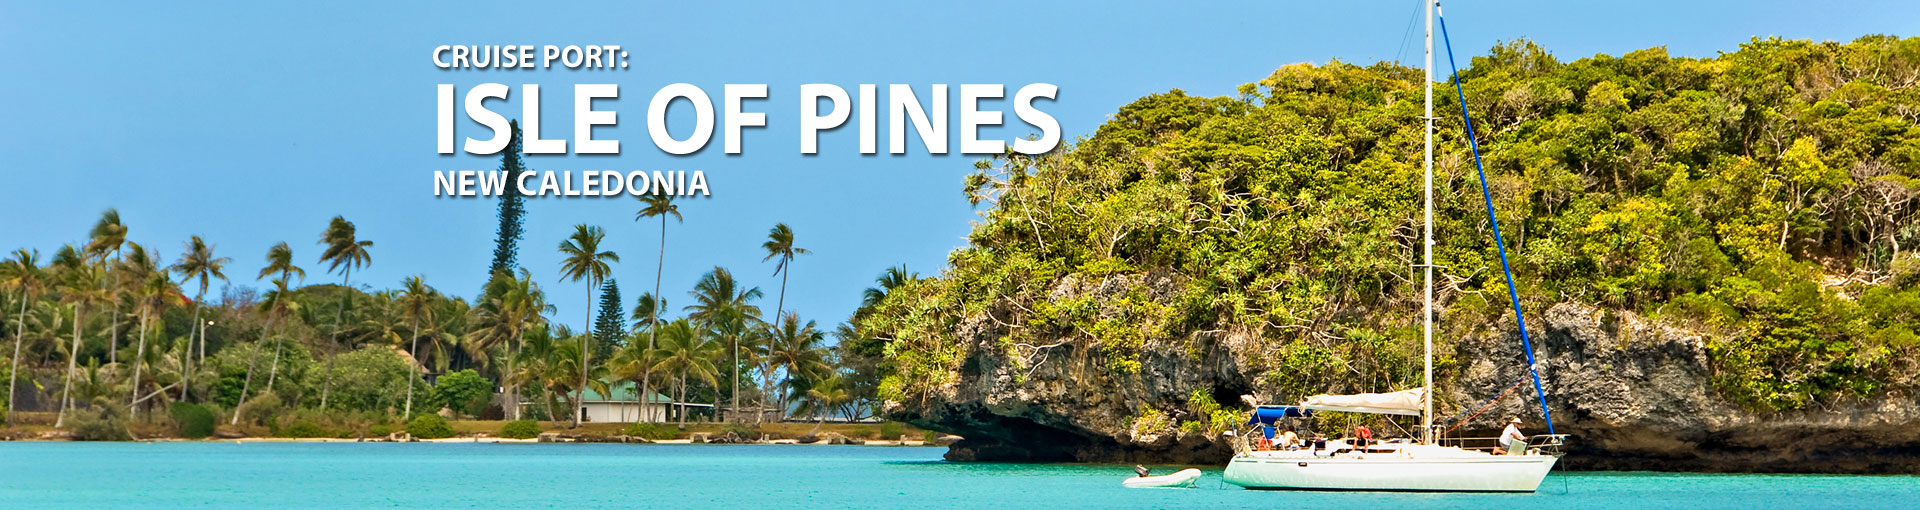 Cruises to Isle Of Pines, New Caledonia